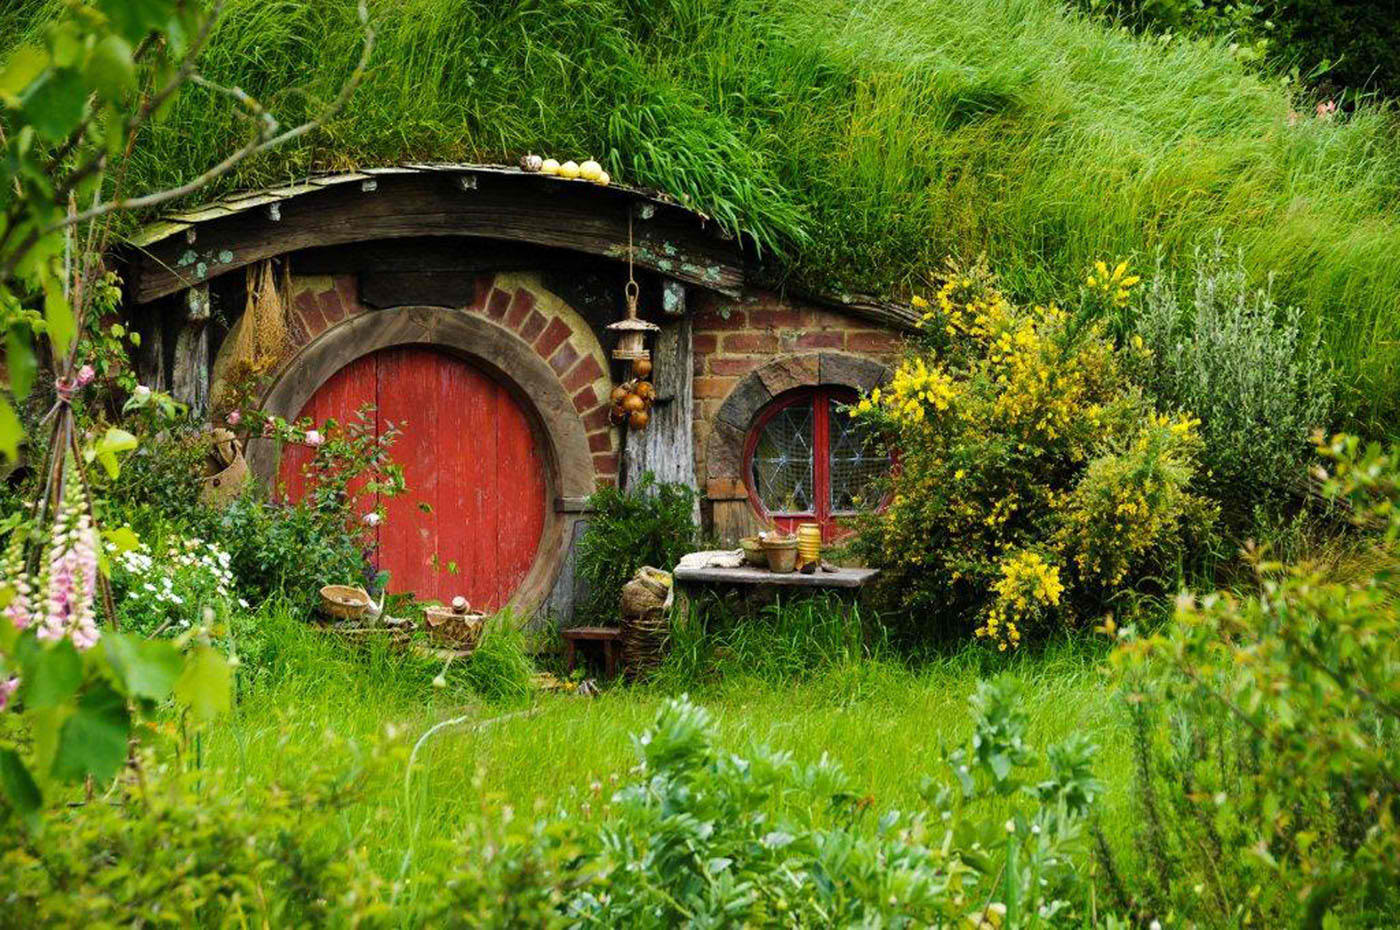 Crystal's exclusive dinner at the Hobbiton movie set in New Zealand  includes visiting 'Hobbit Holes'  i.e., Hobbit homes build into hills